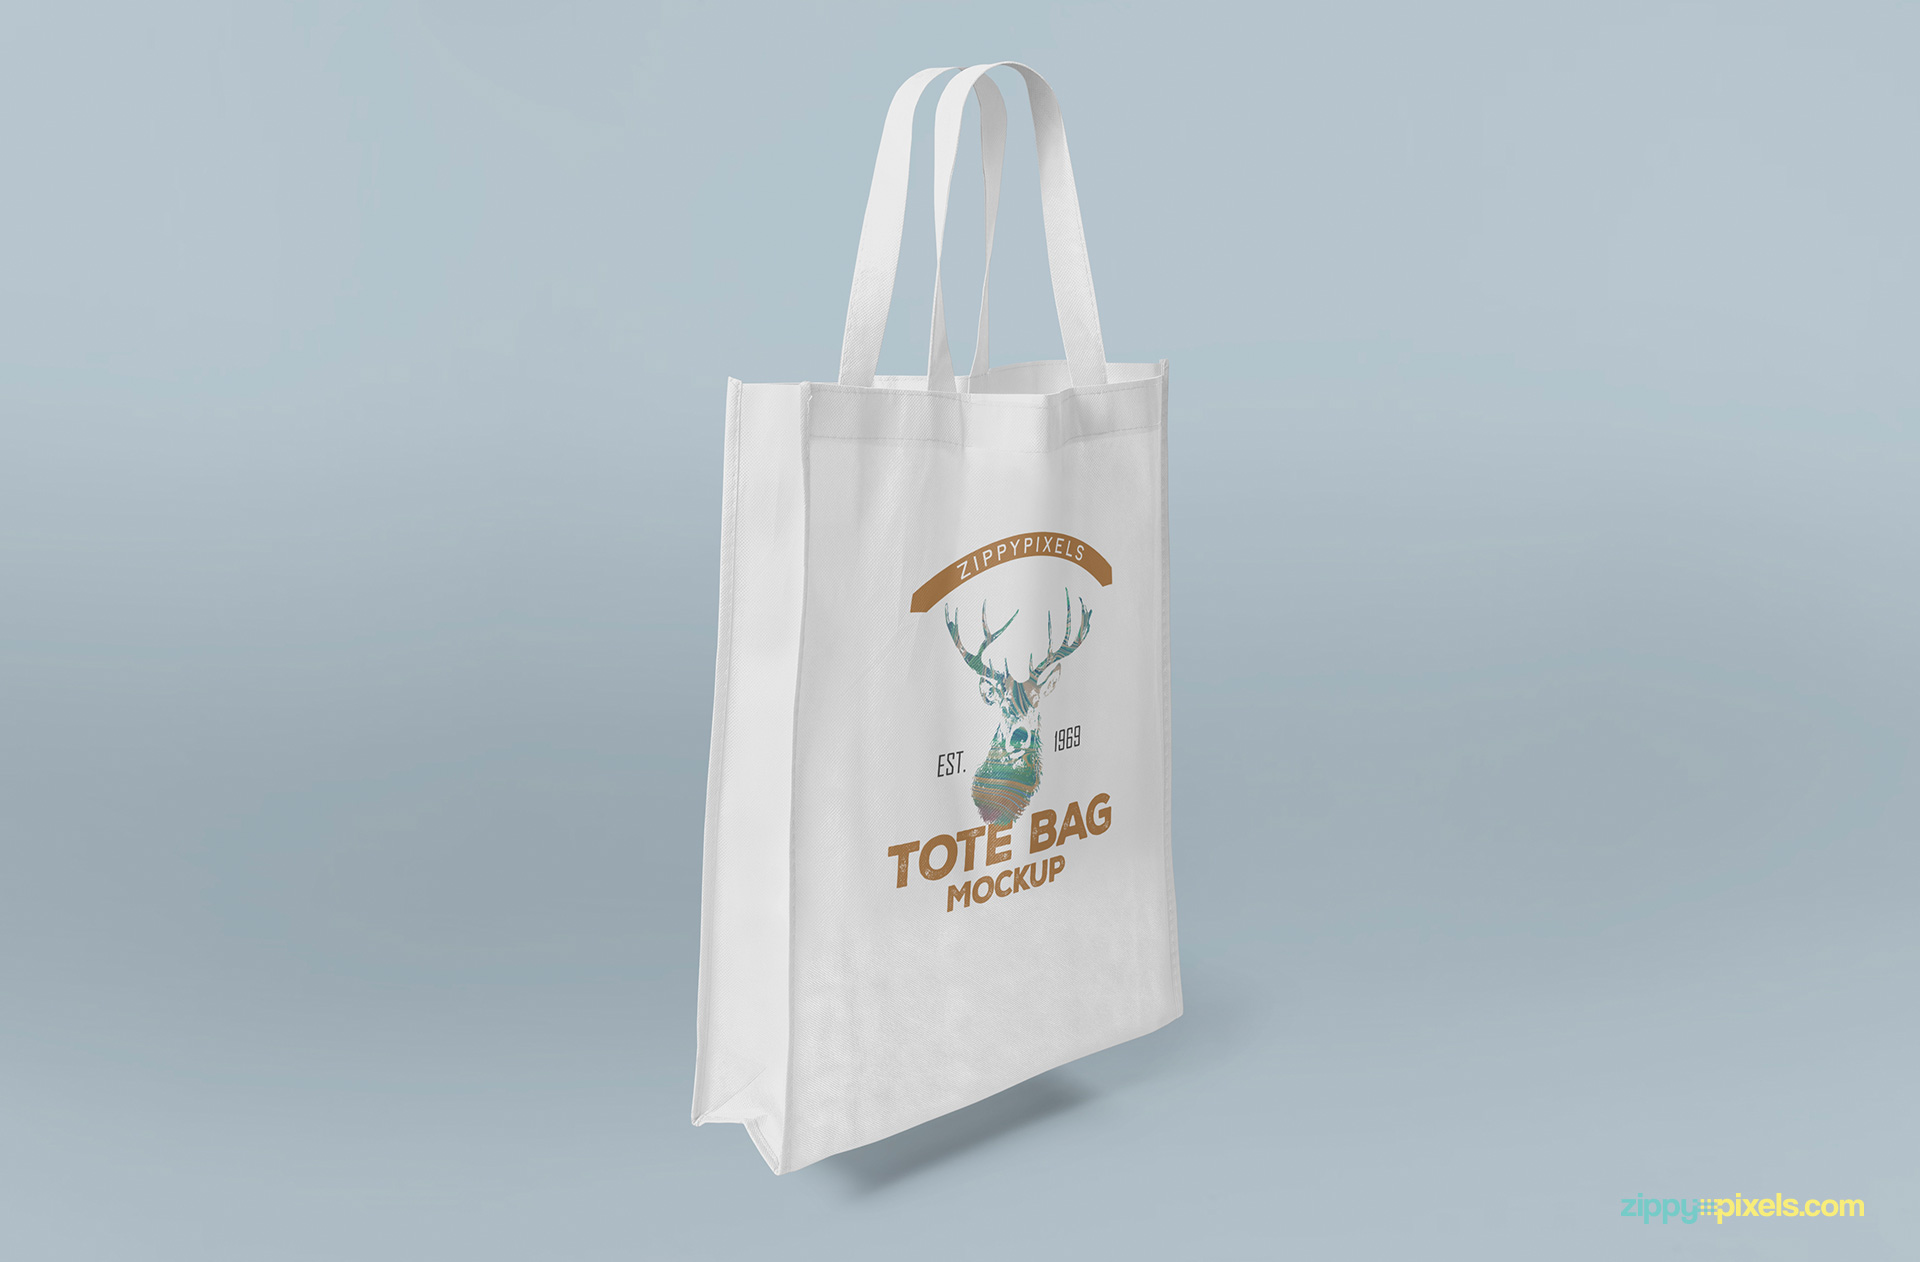 hanging-tote-bag-mockup-side-view